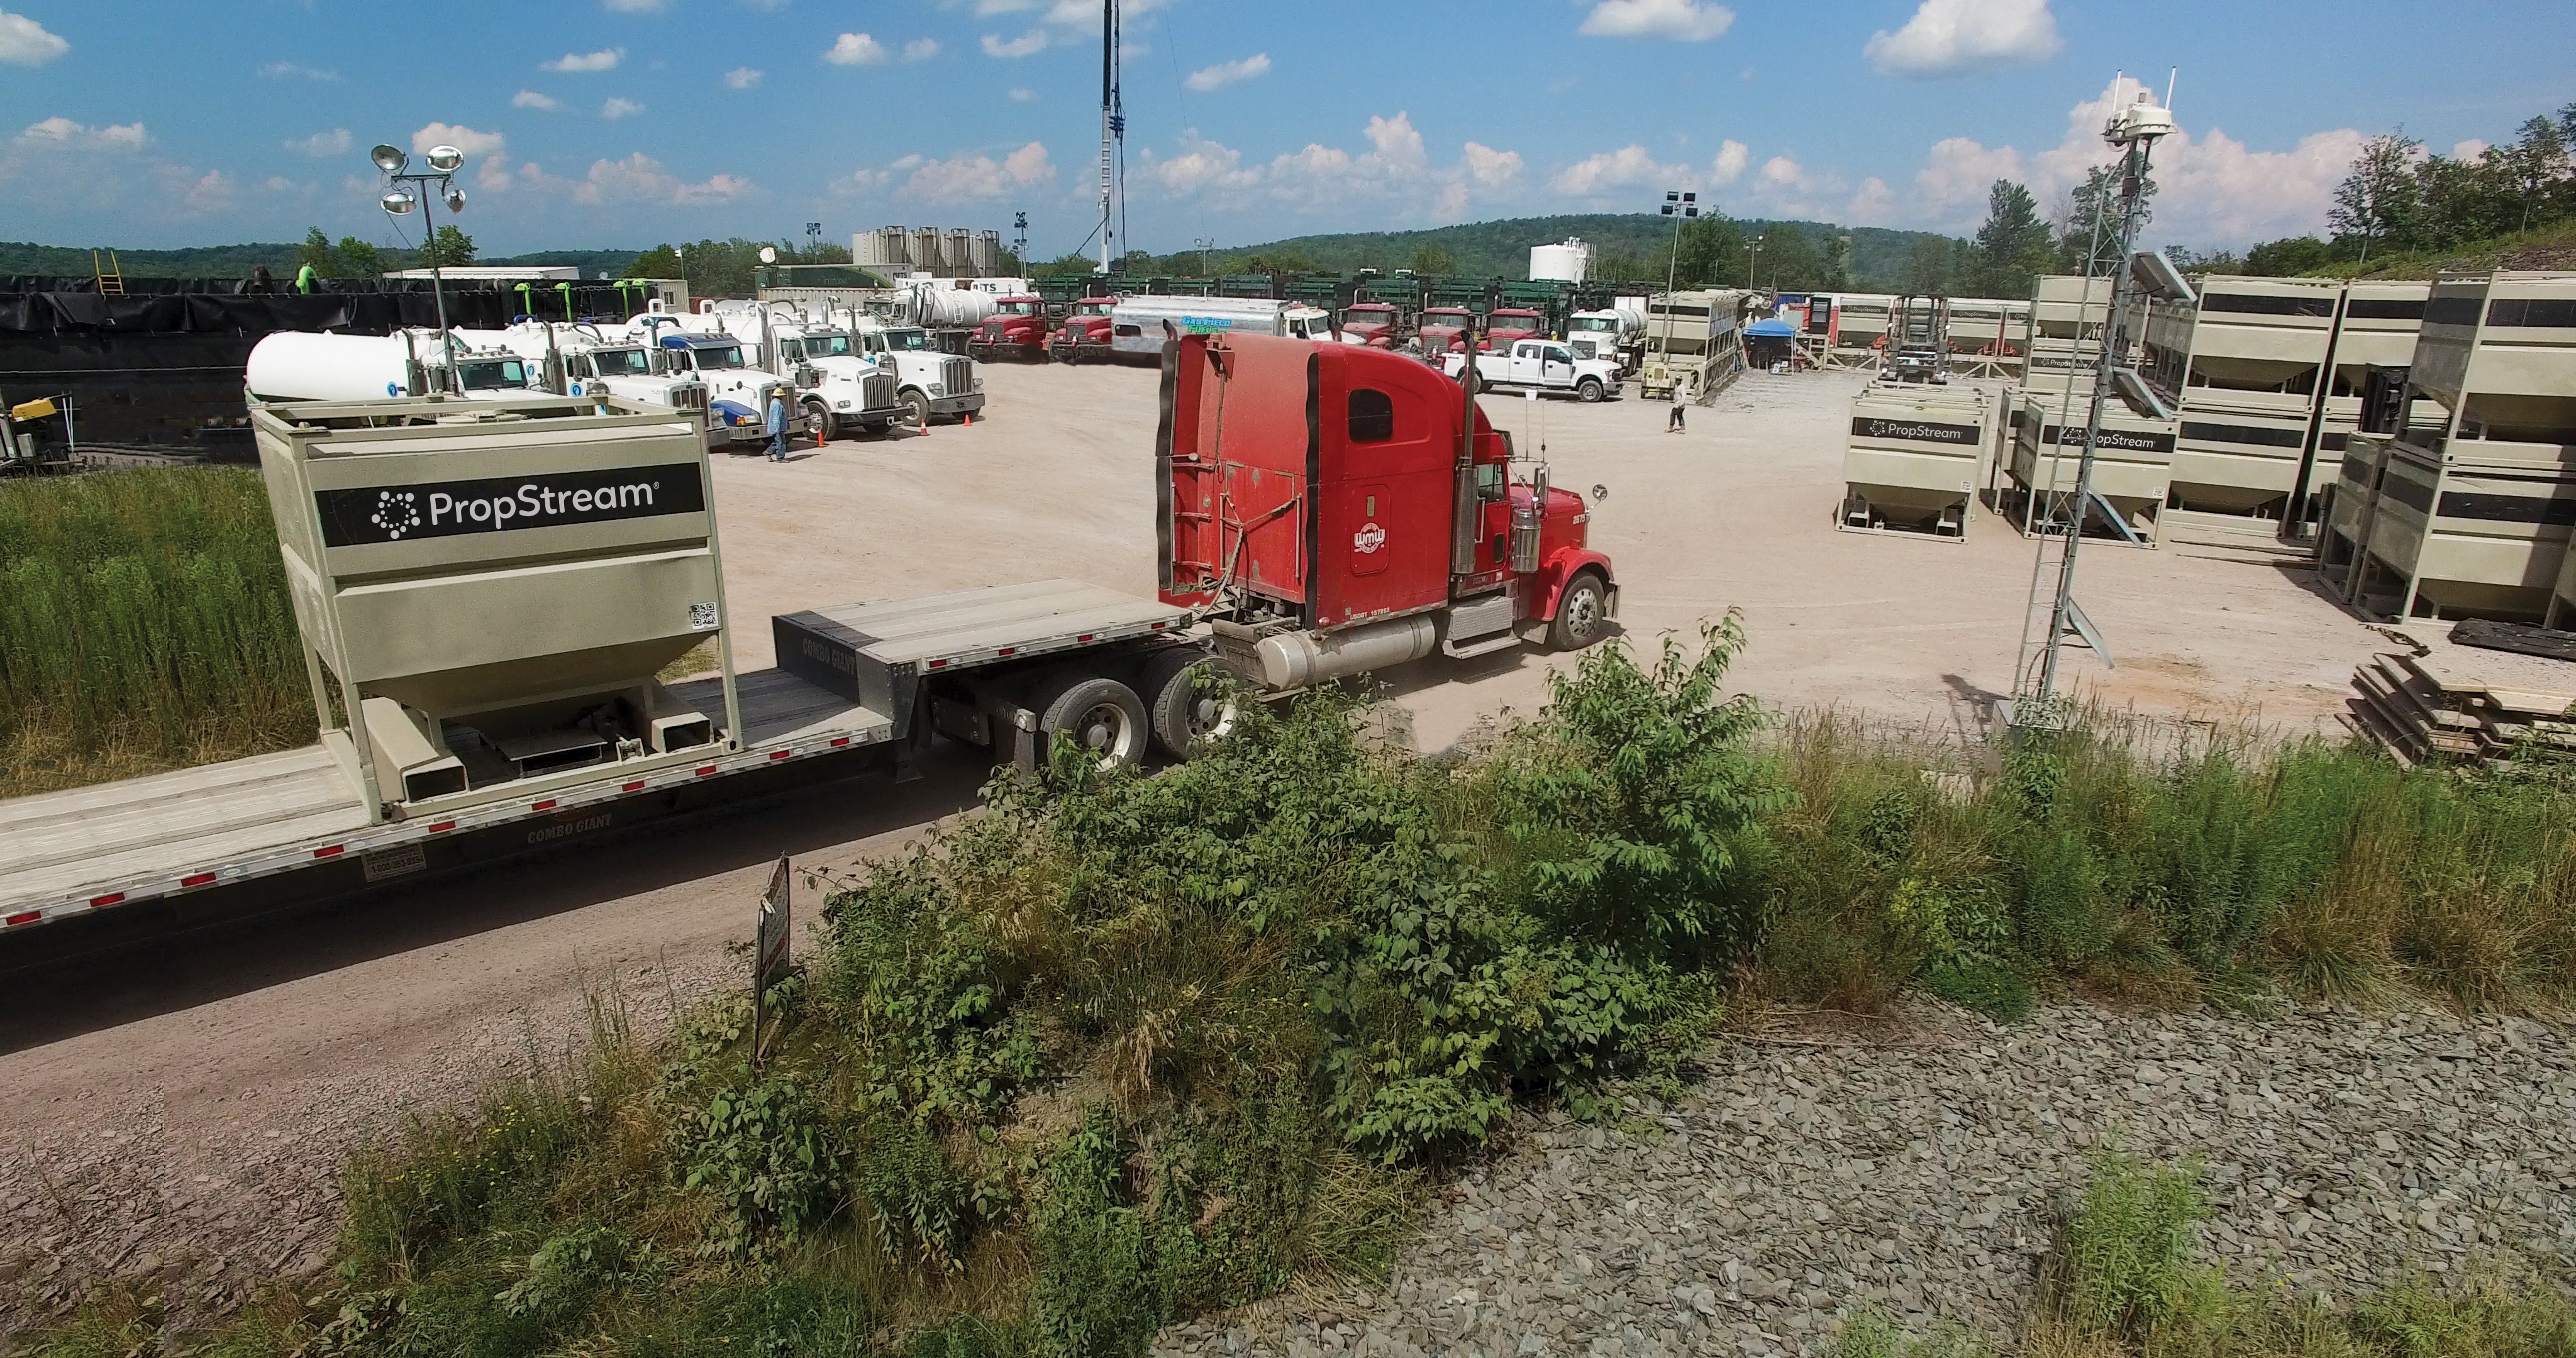 Containers deliver proppant the last mile to a Marcellus well site in Pennsylvania. (Source: Hi-Crush)